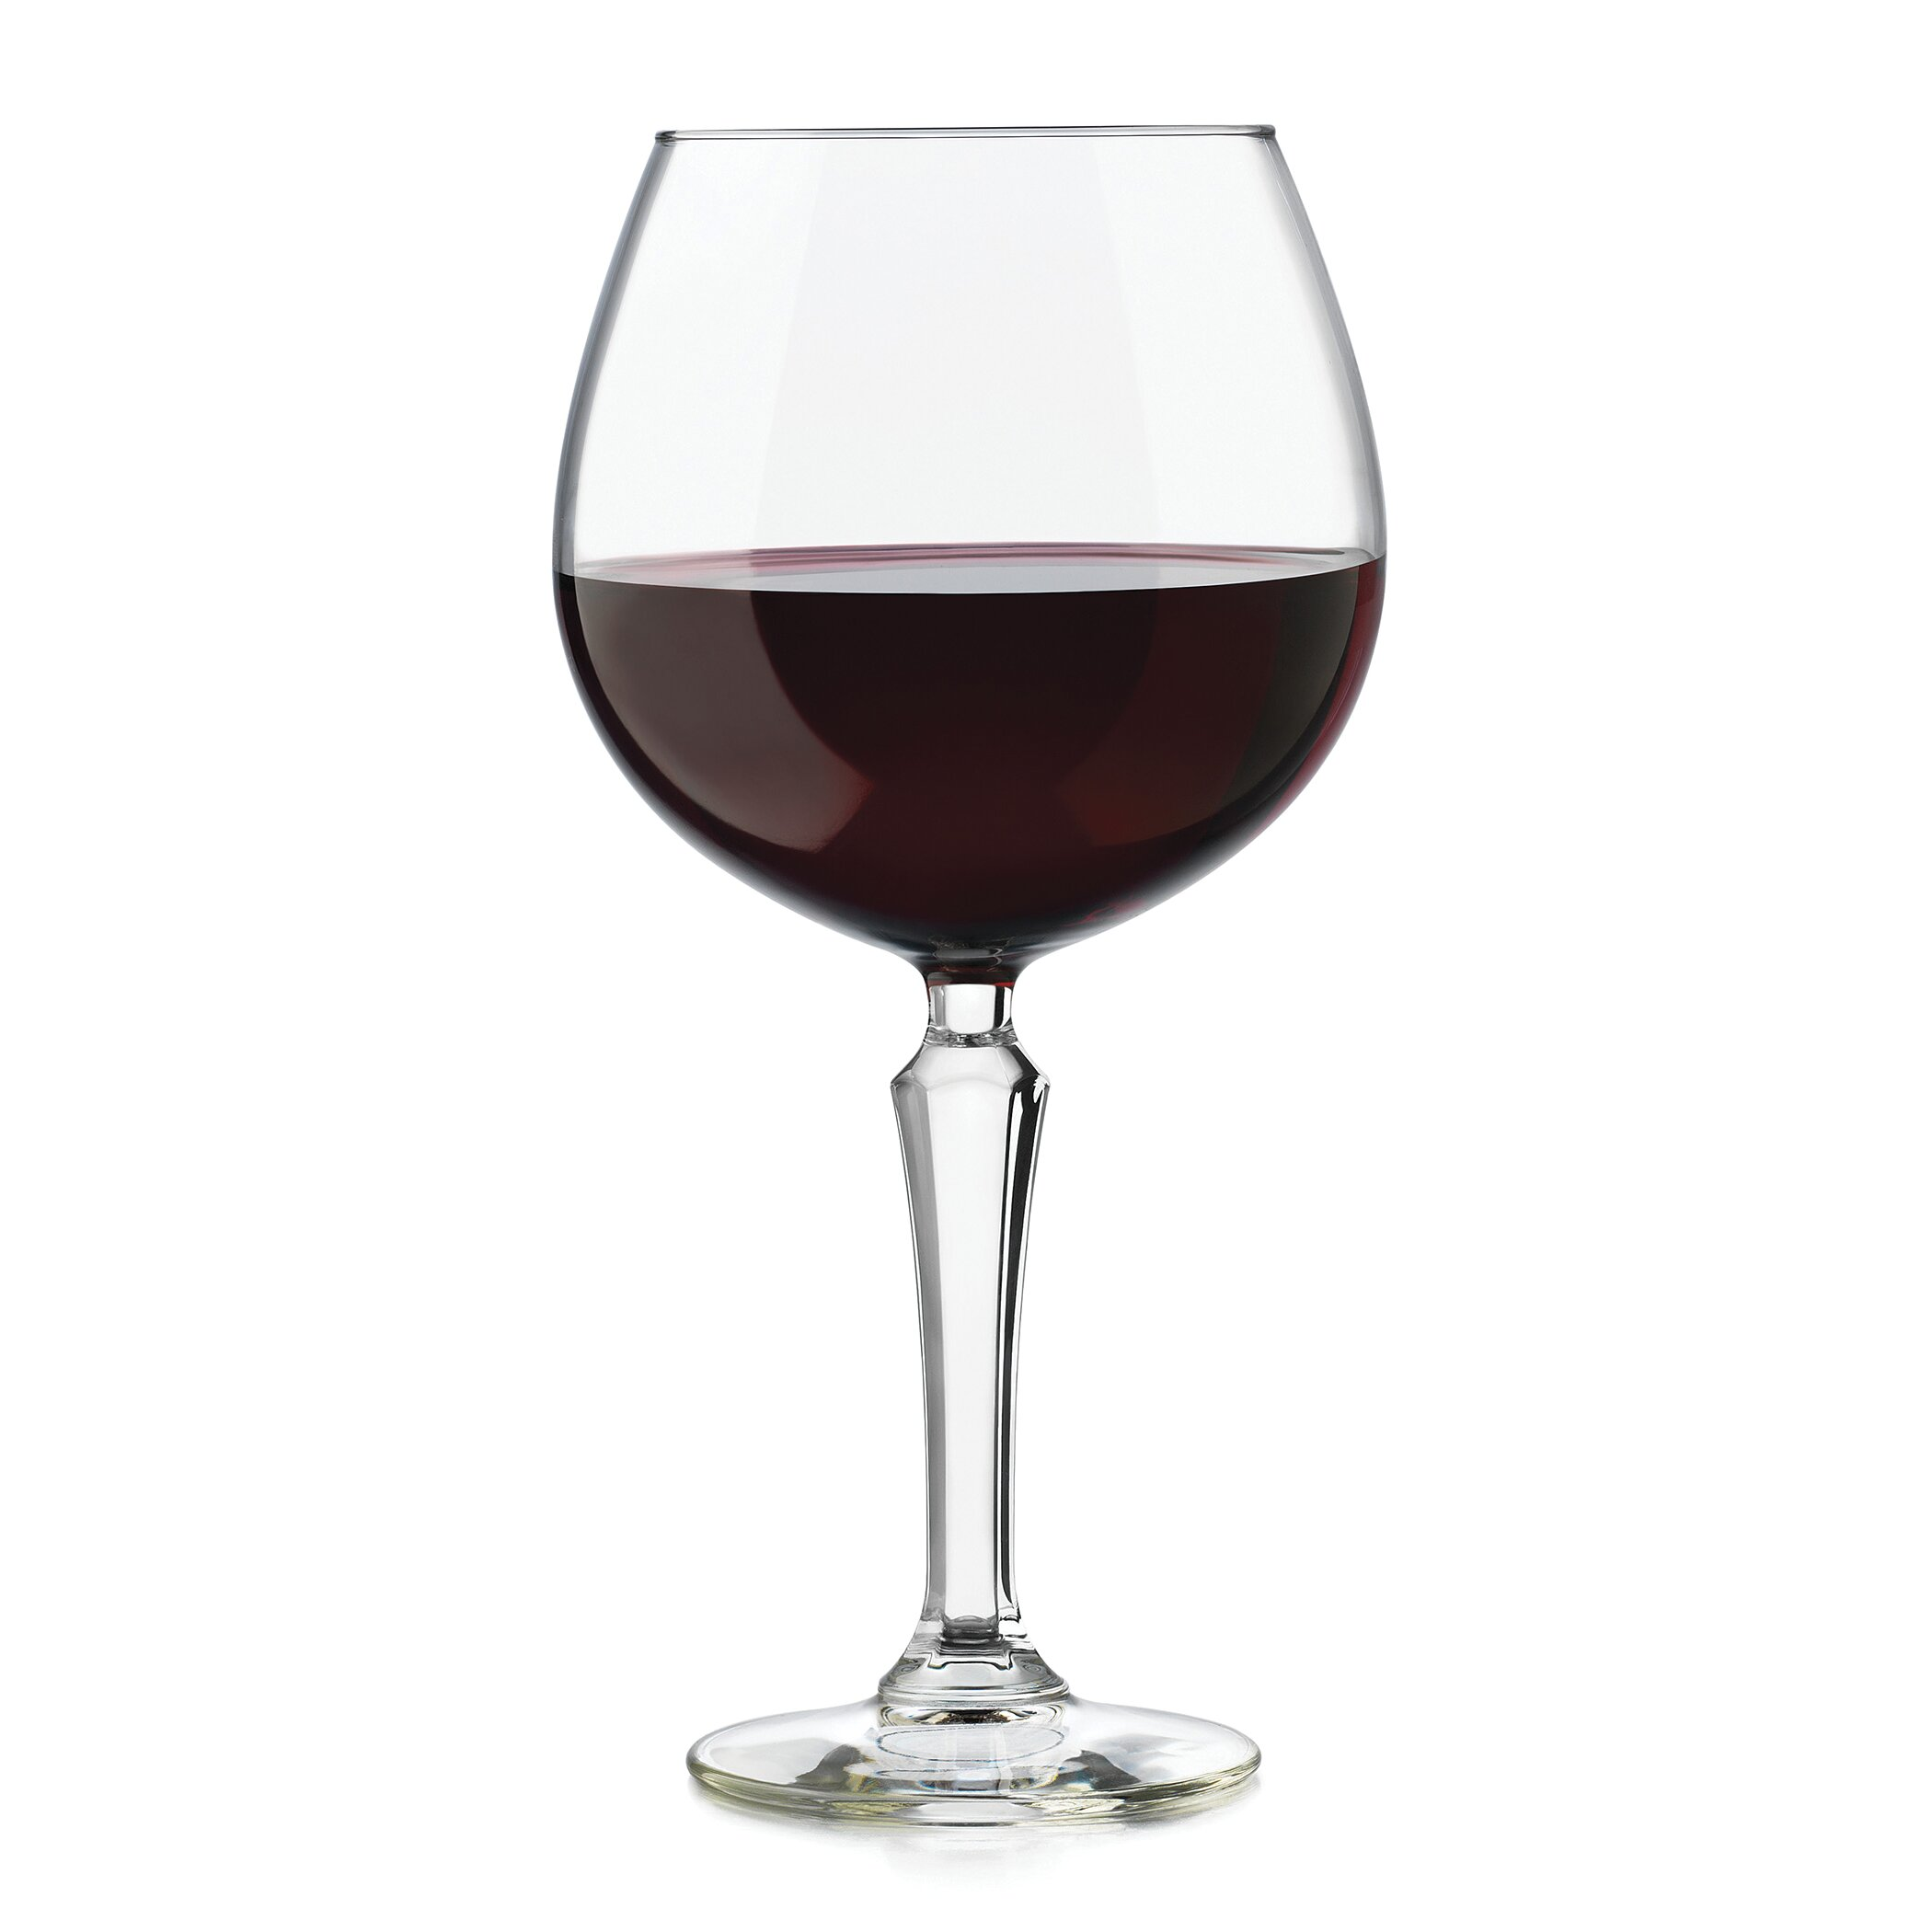 libbey capone 12 oz red wine glass reviews wayfair. Black Bedroom Furniture Sets. Home Design Ideas